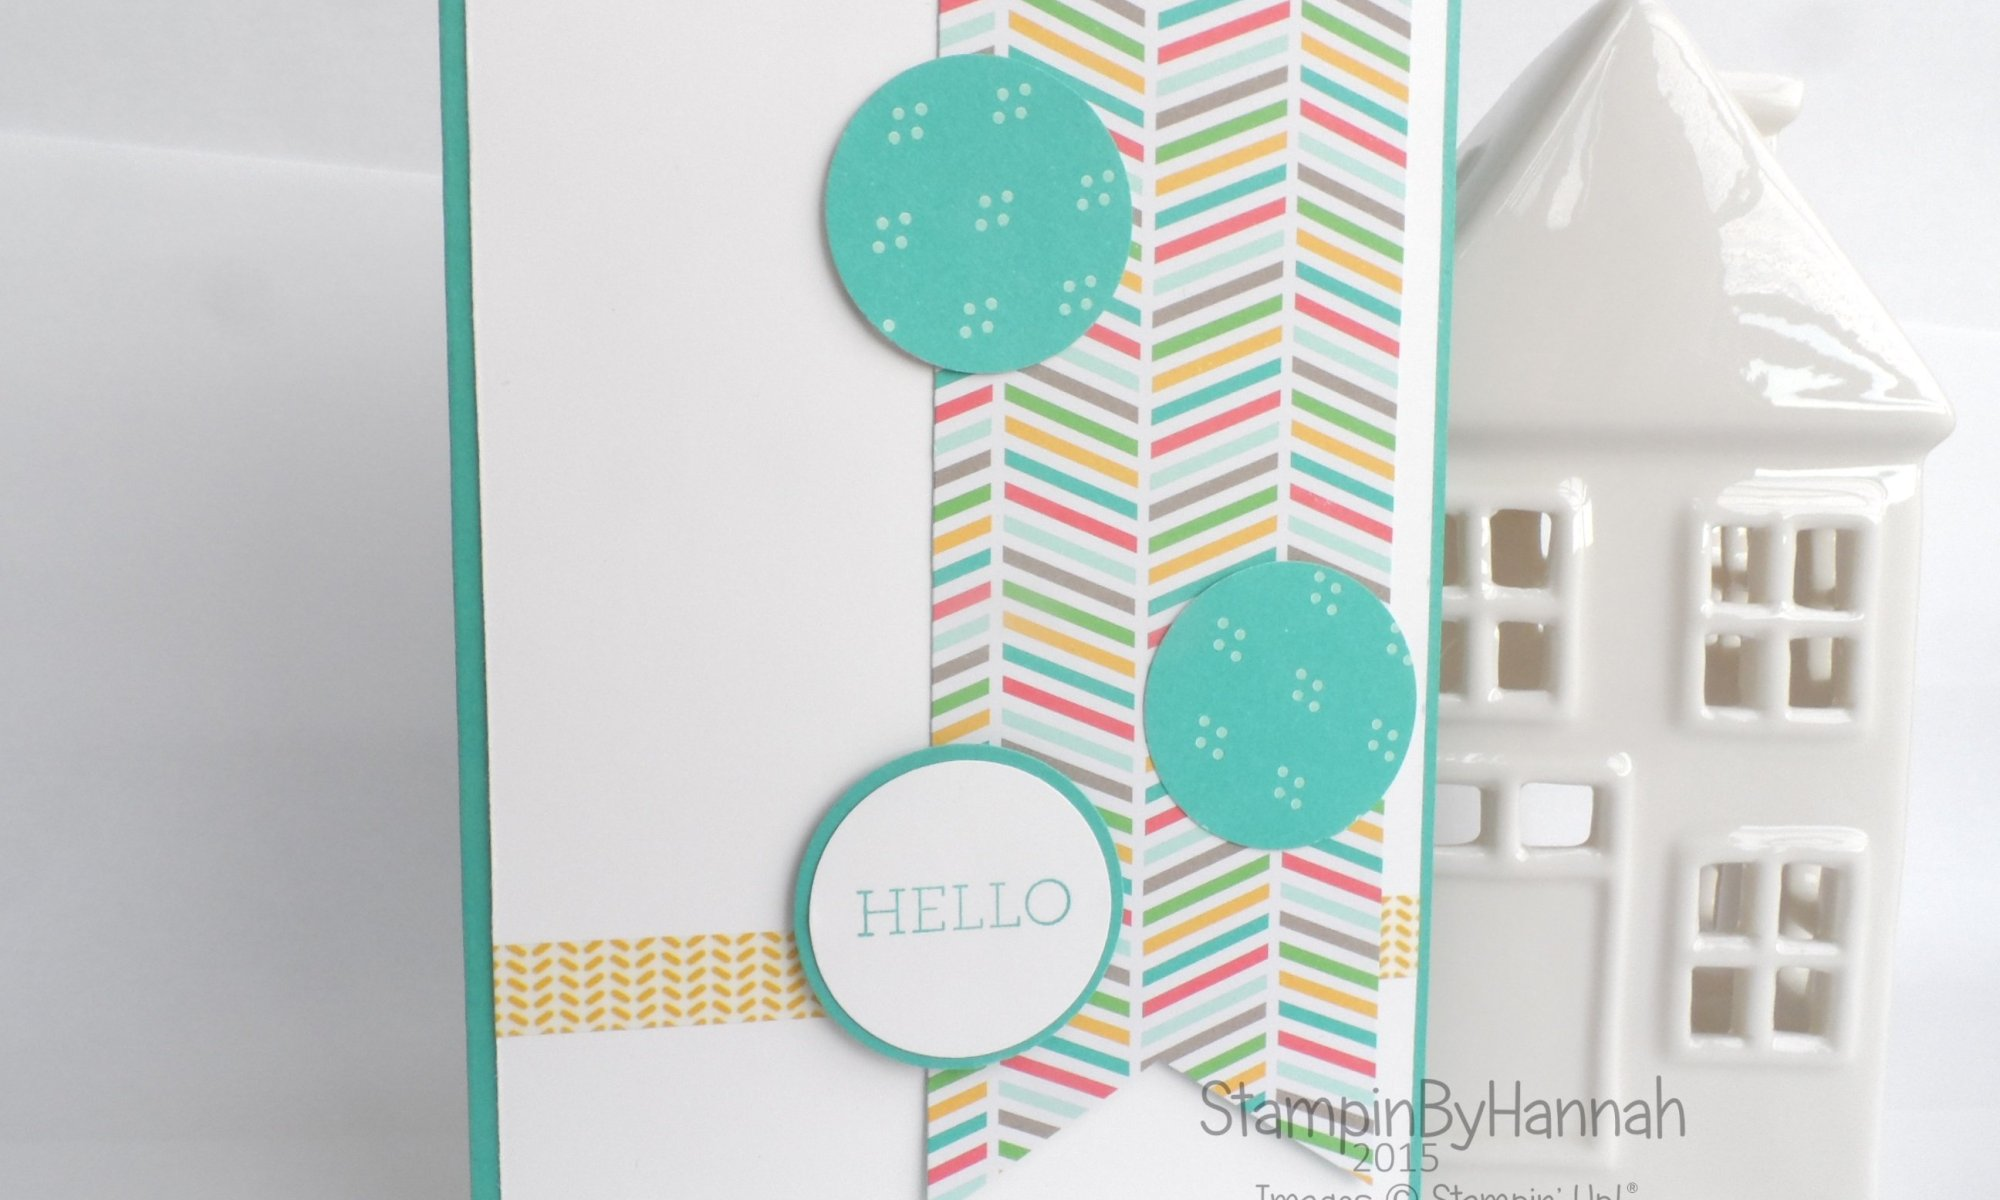 Stampin' Up! Uk Sketch Challenge Hello Card Cherry on Top